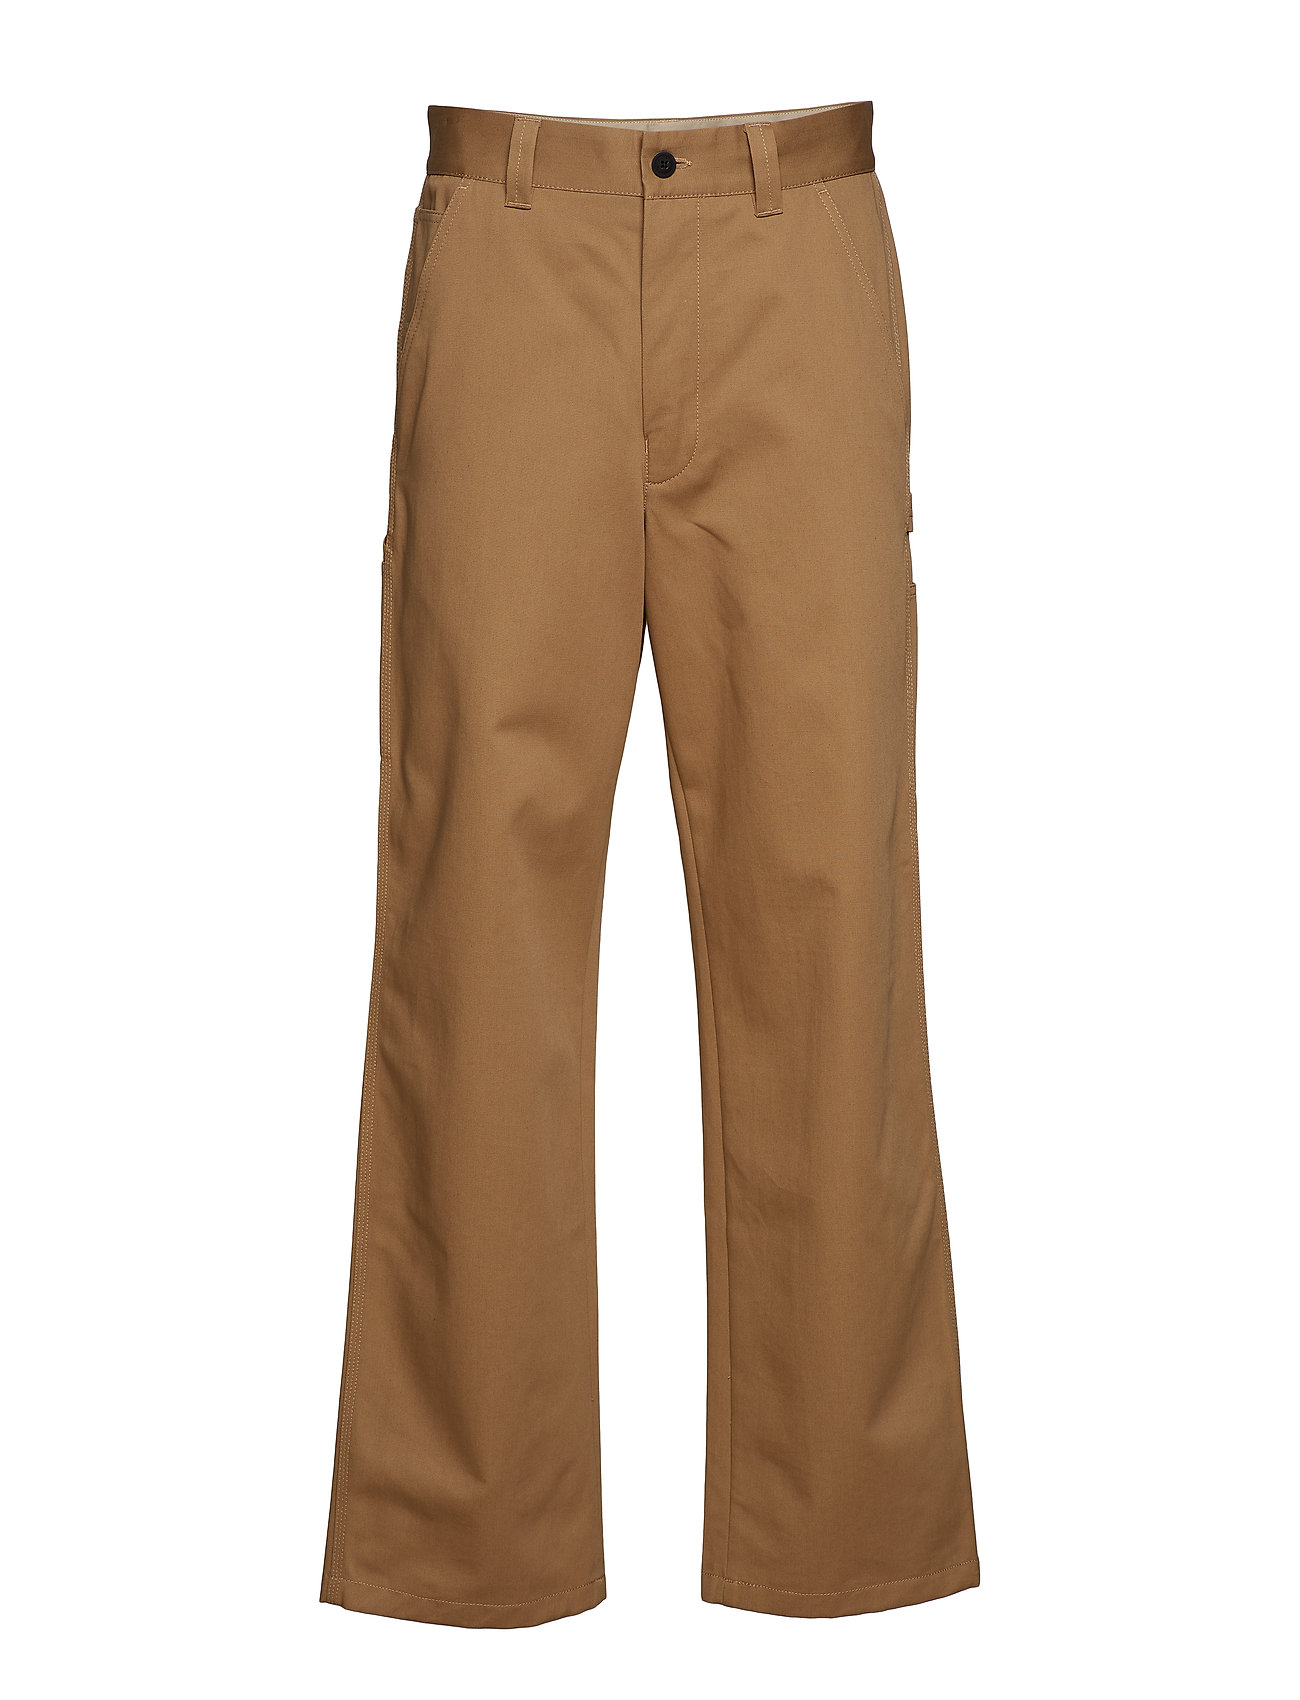 Hilfiger Collection CARGO PANT - TIGER'S EYE